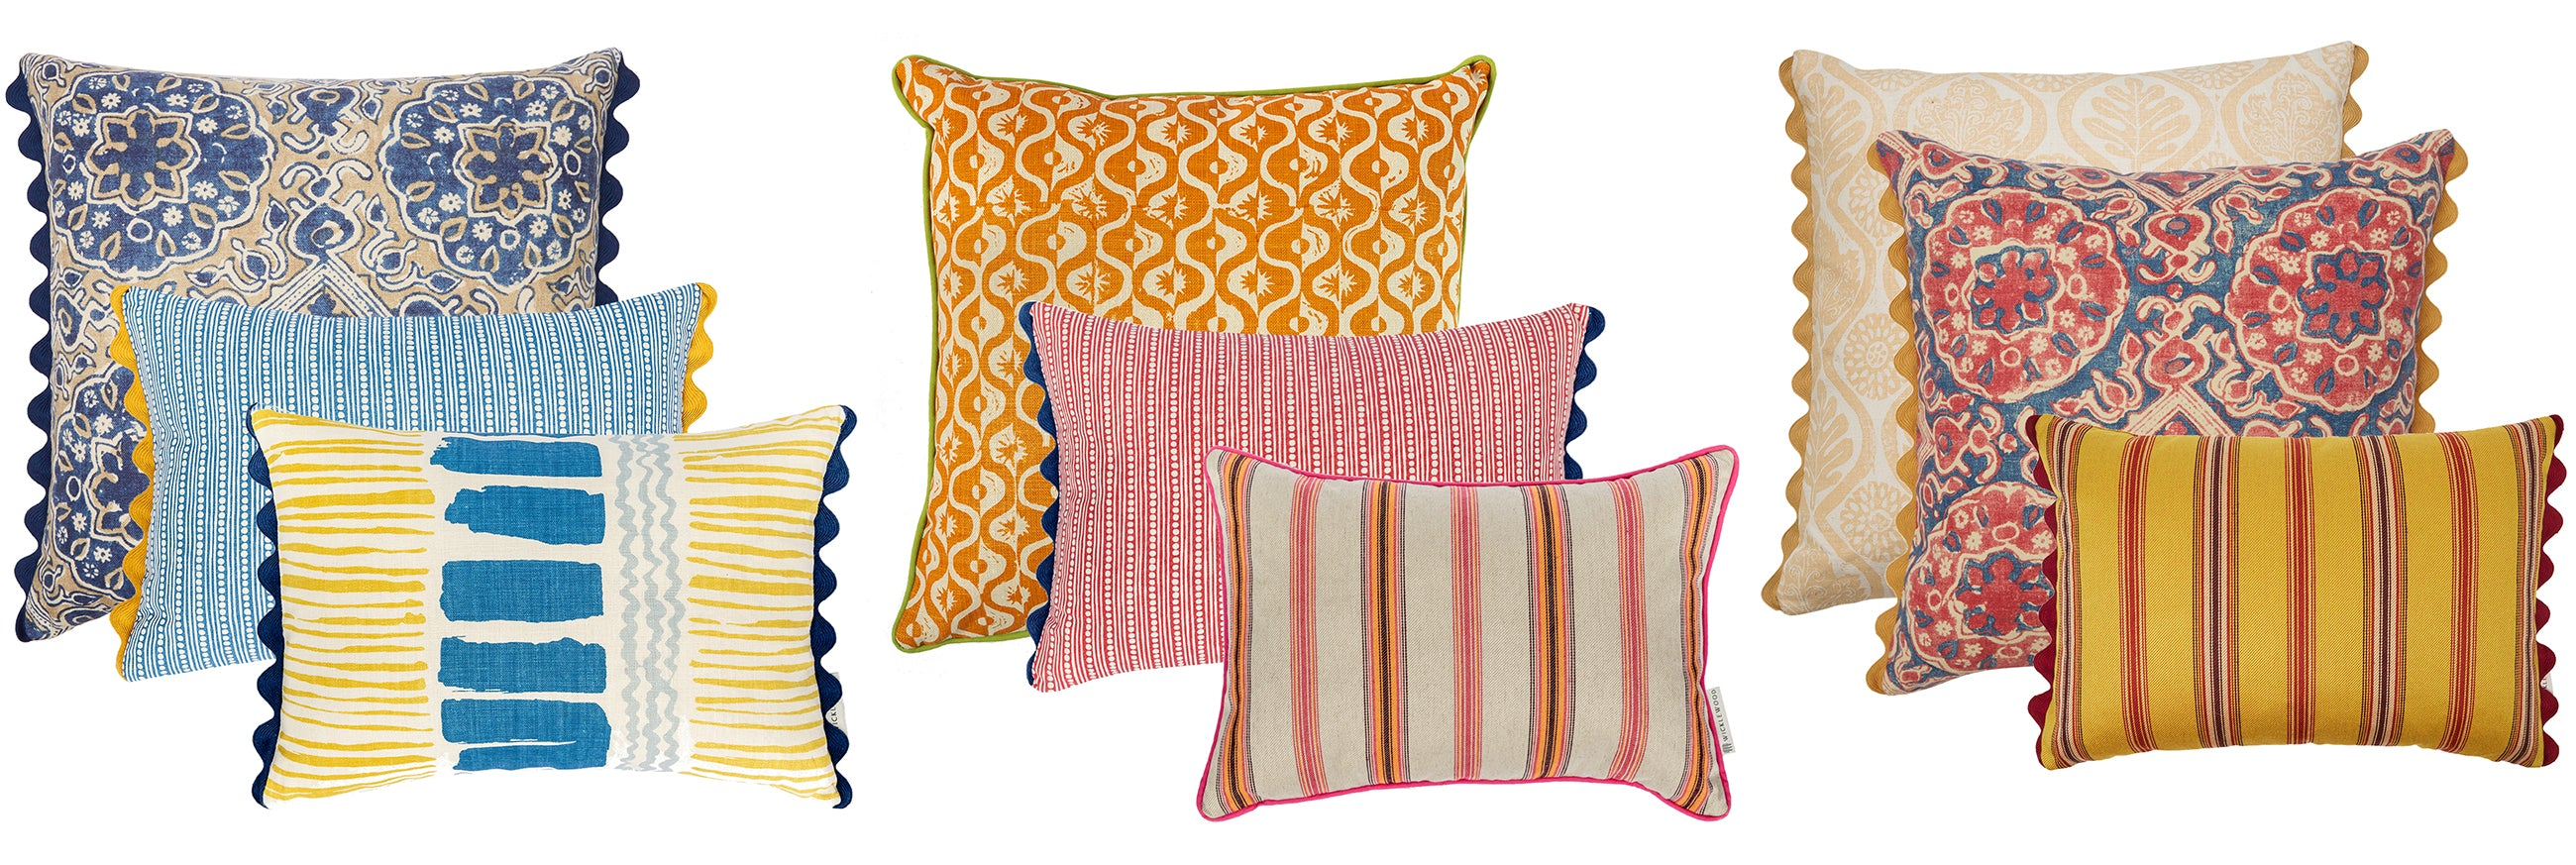 Wicklewood summer cushion sets - making interior design easy with our pre-styled sets of cushions